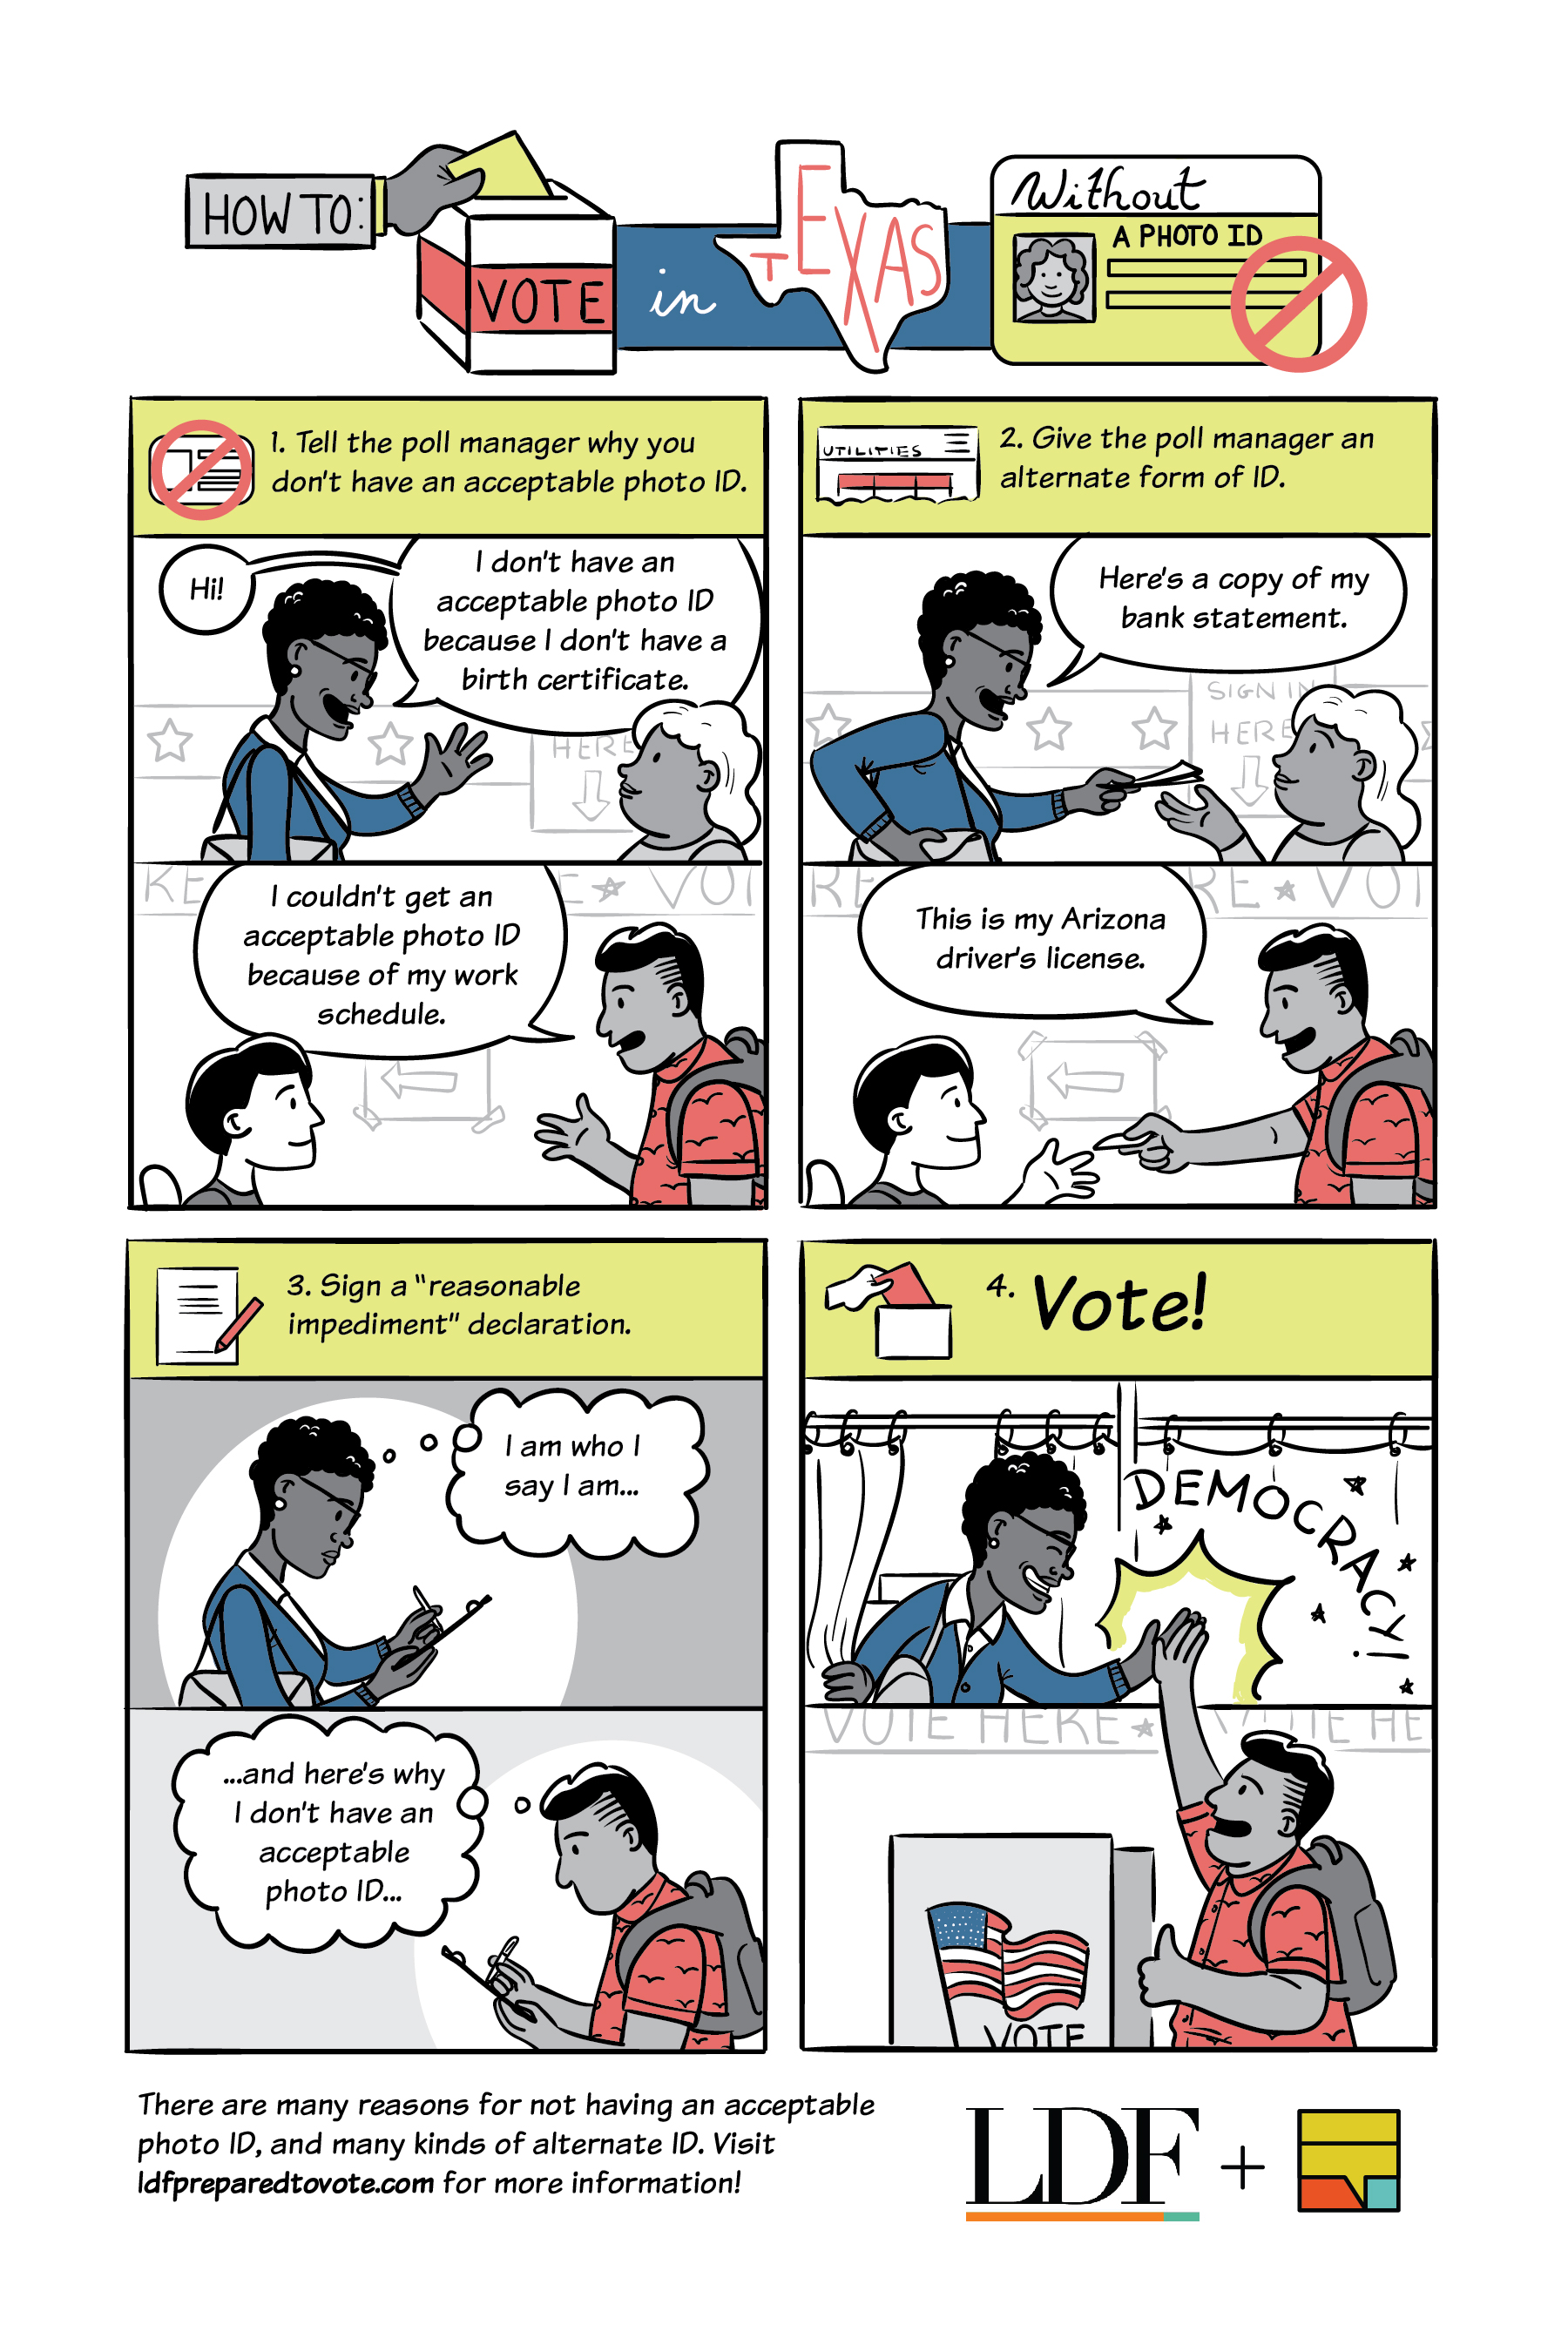 Texas Voting Comic Social Media.jpg